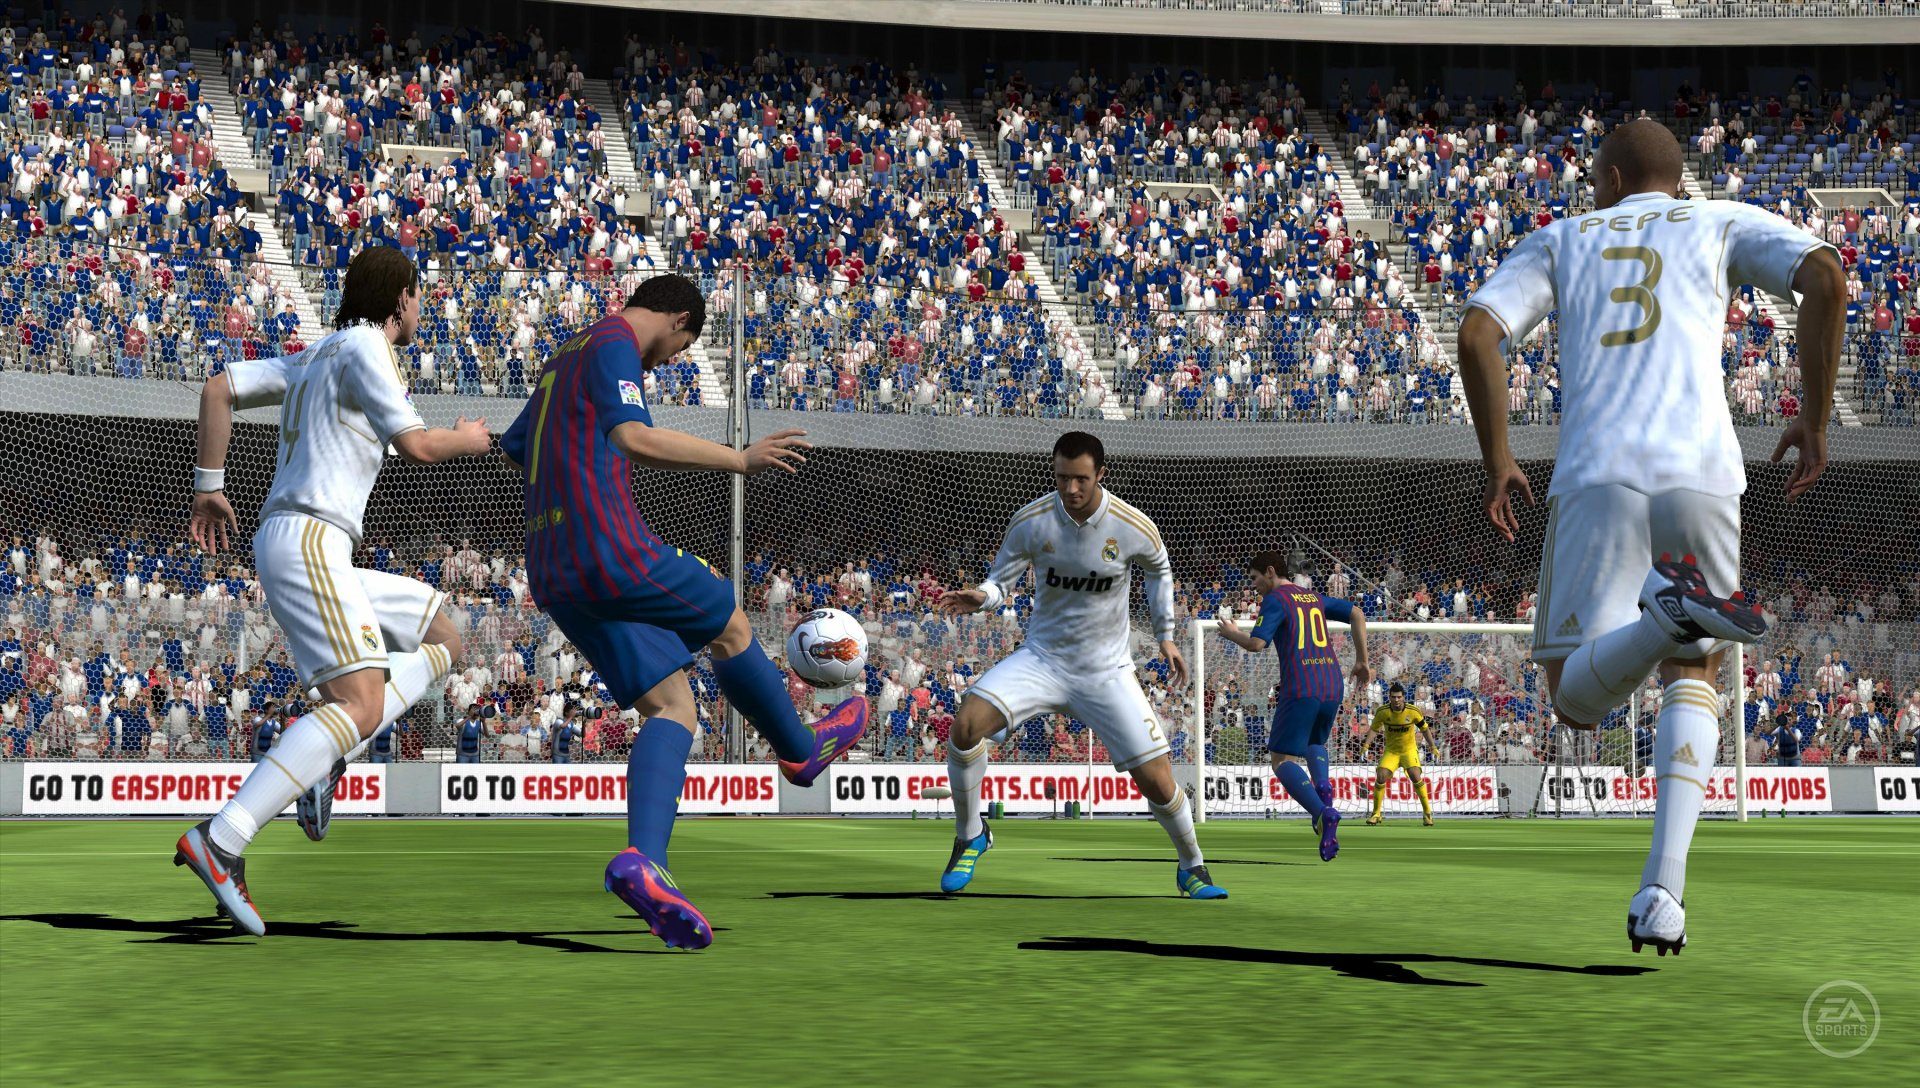 Soccer Games - Play Soccer Games on Free Online Games